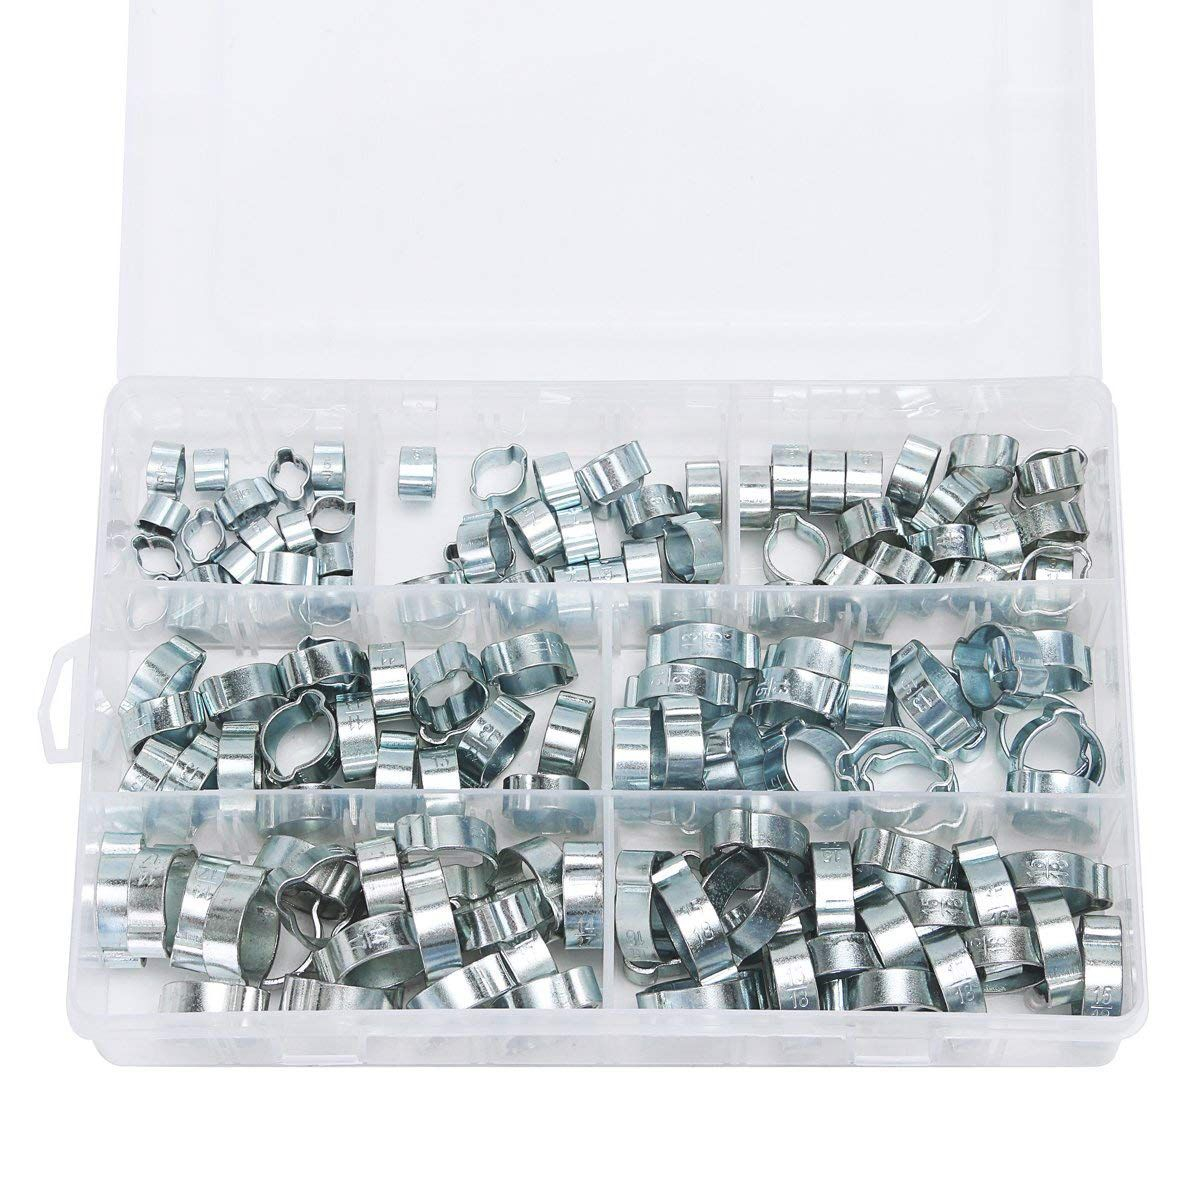 Double Ear O Clips 140 Pcs Multi Size Clamps Mild Steel Zinc Plated double ear clamps Assortment For Hydraulic Hose Fuel silver ac12 4 stainless steel hose hoops clamps set silver 12 pcs